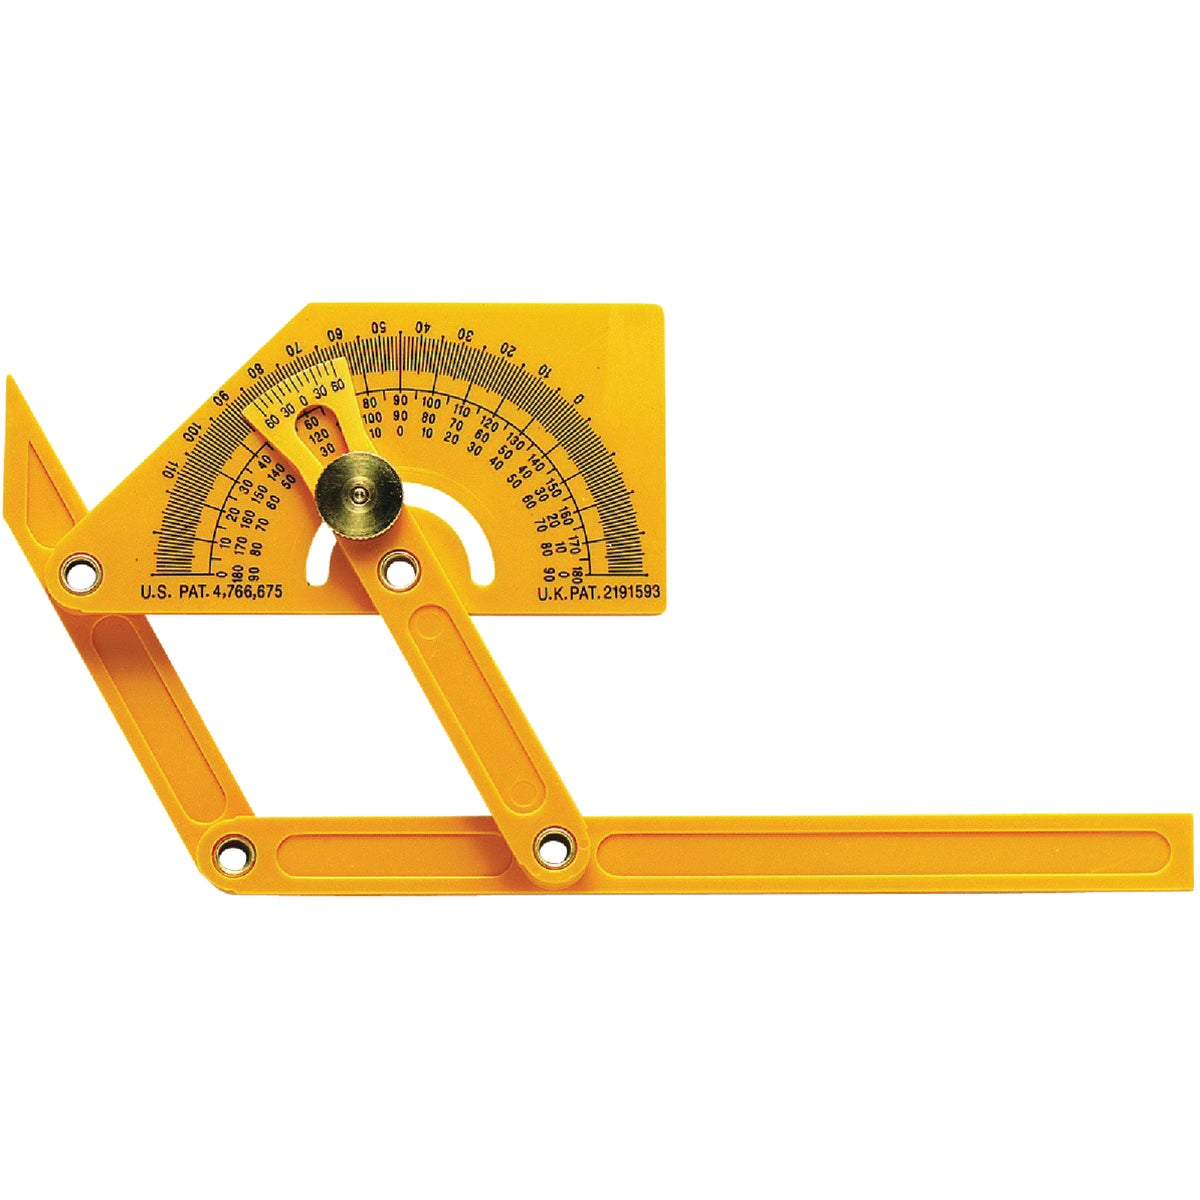 PLASTIC PROTRACTOR - 29 by Gen Tools Mfg